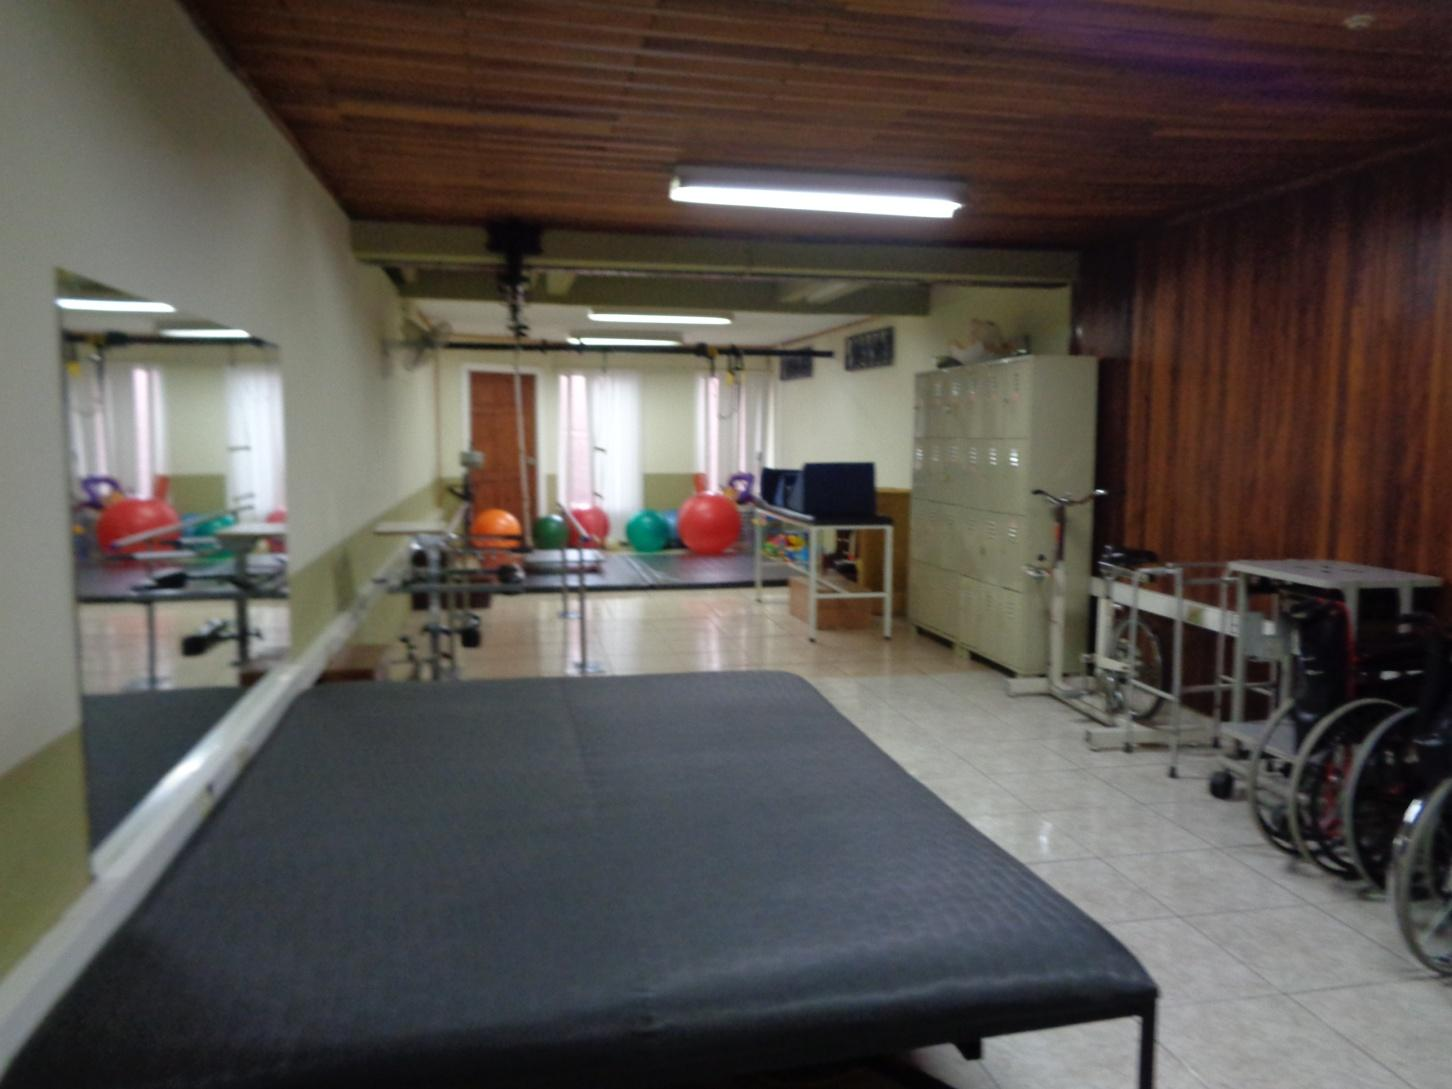 School of Physical Therapy - PT Lab